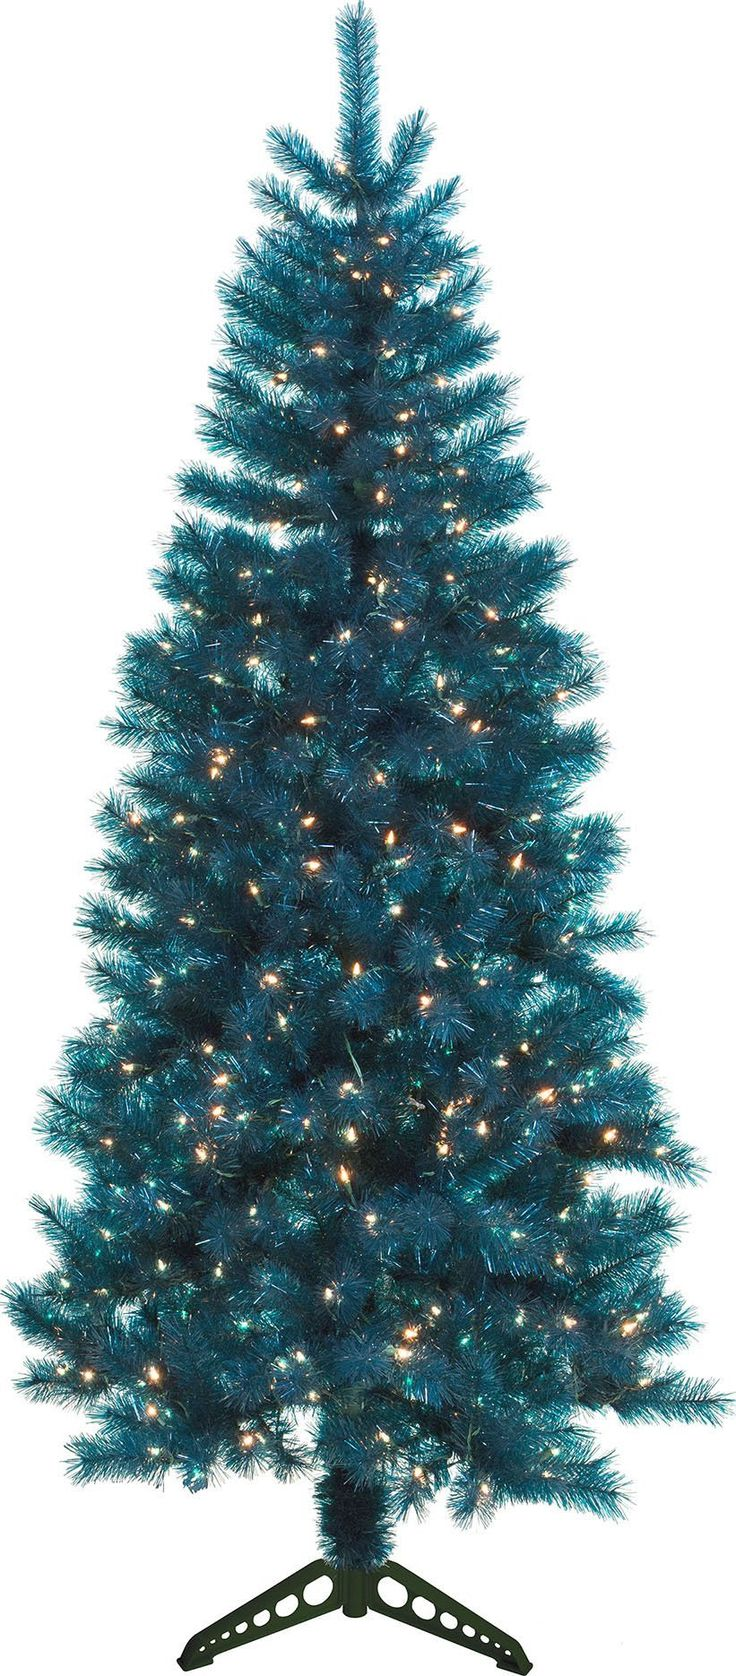 General Foam Plastics-Mountain King Prelit Artificial Christmas Tree- Teal Trans 4 Foot